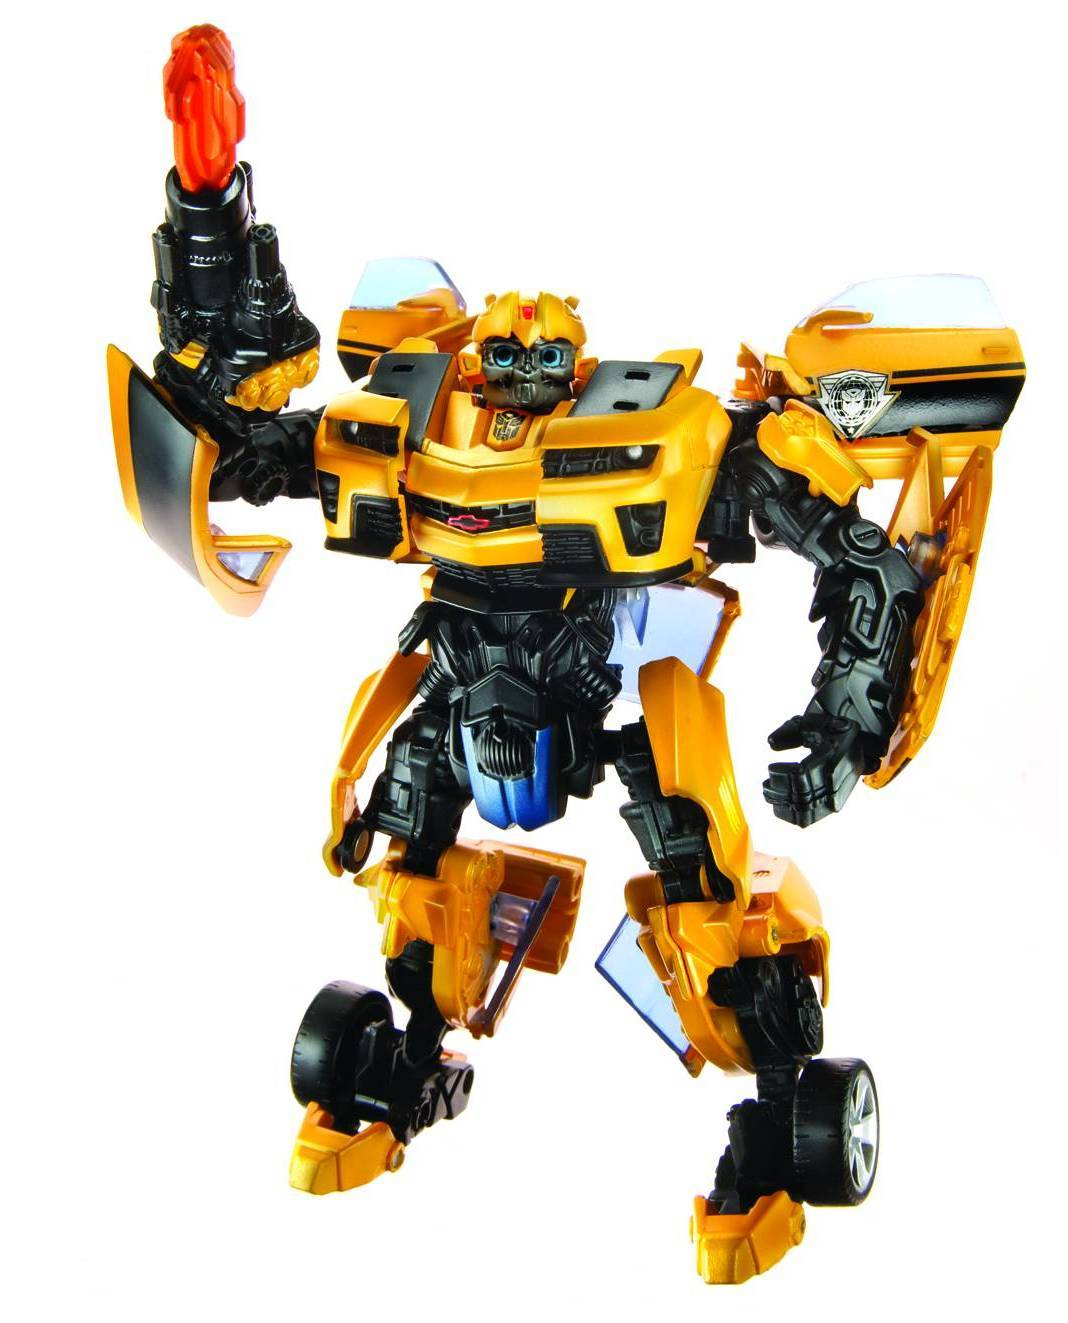 TRANSFORMERS 2 ROTF Movie Deluxe Alliance Bumblebee